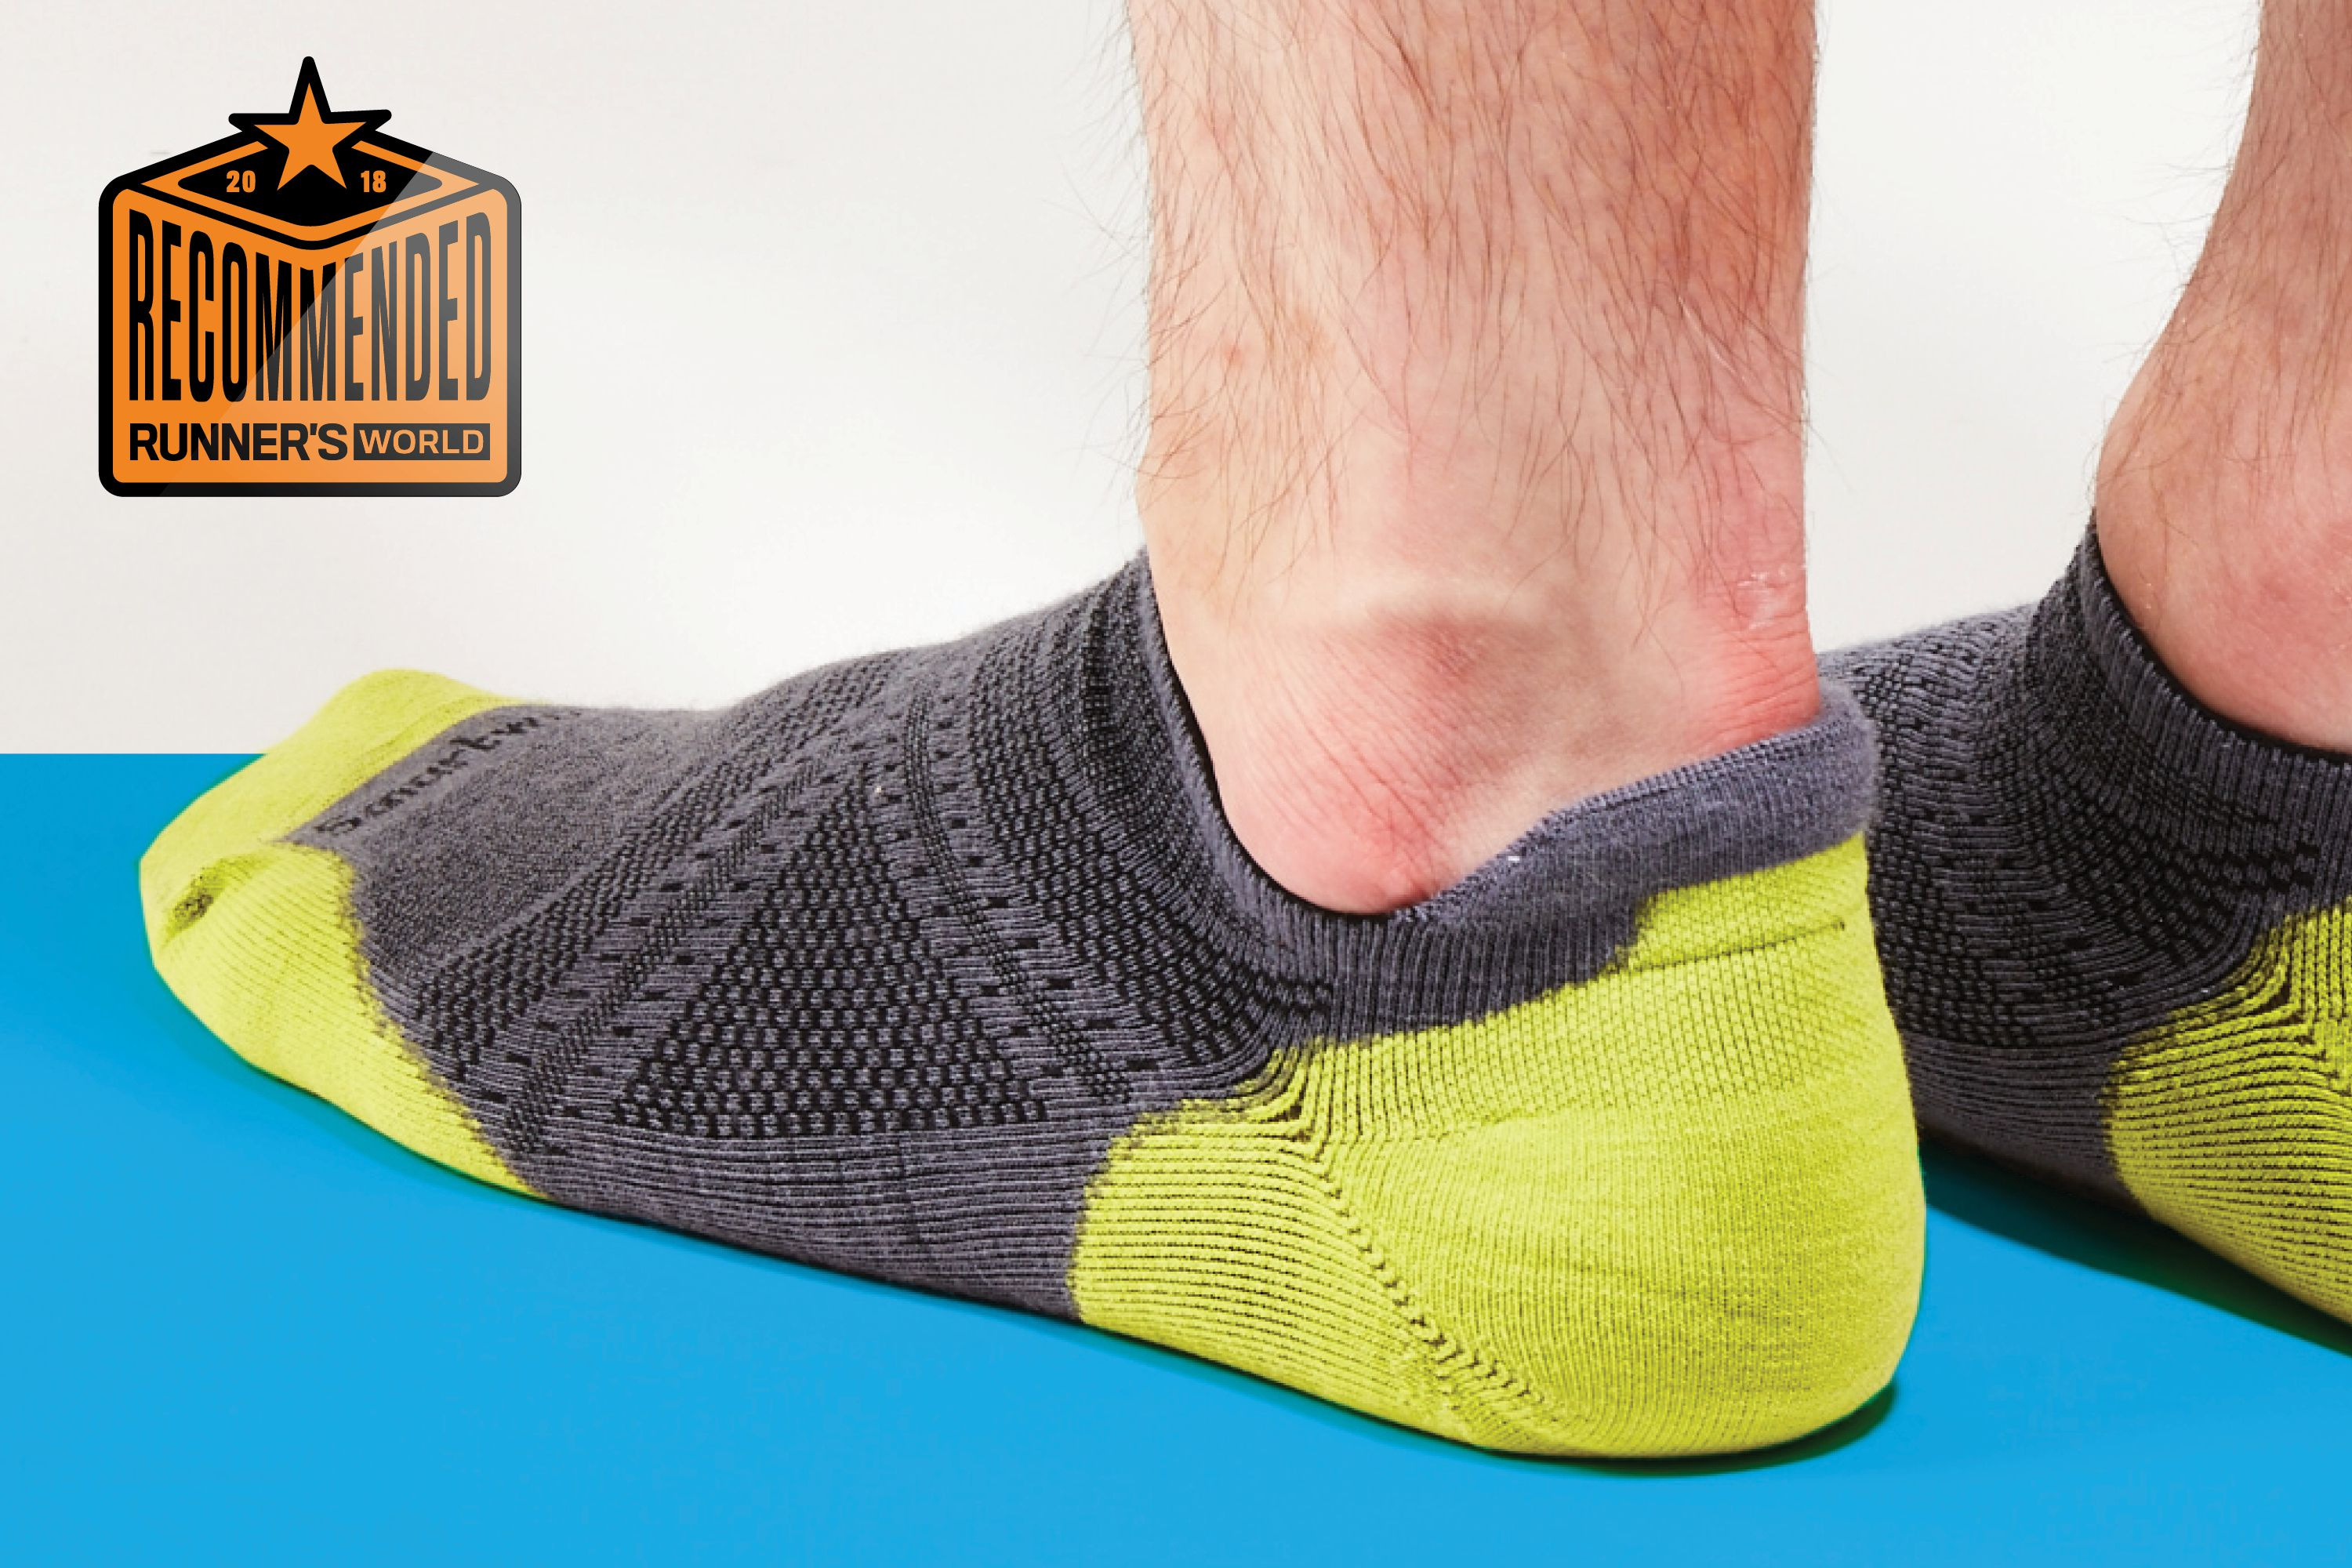 a6046701d73 Best Running Socks - Most Comfortable Socks 2019